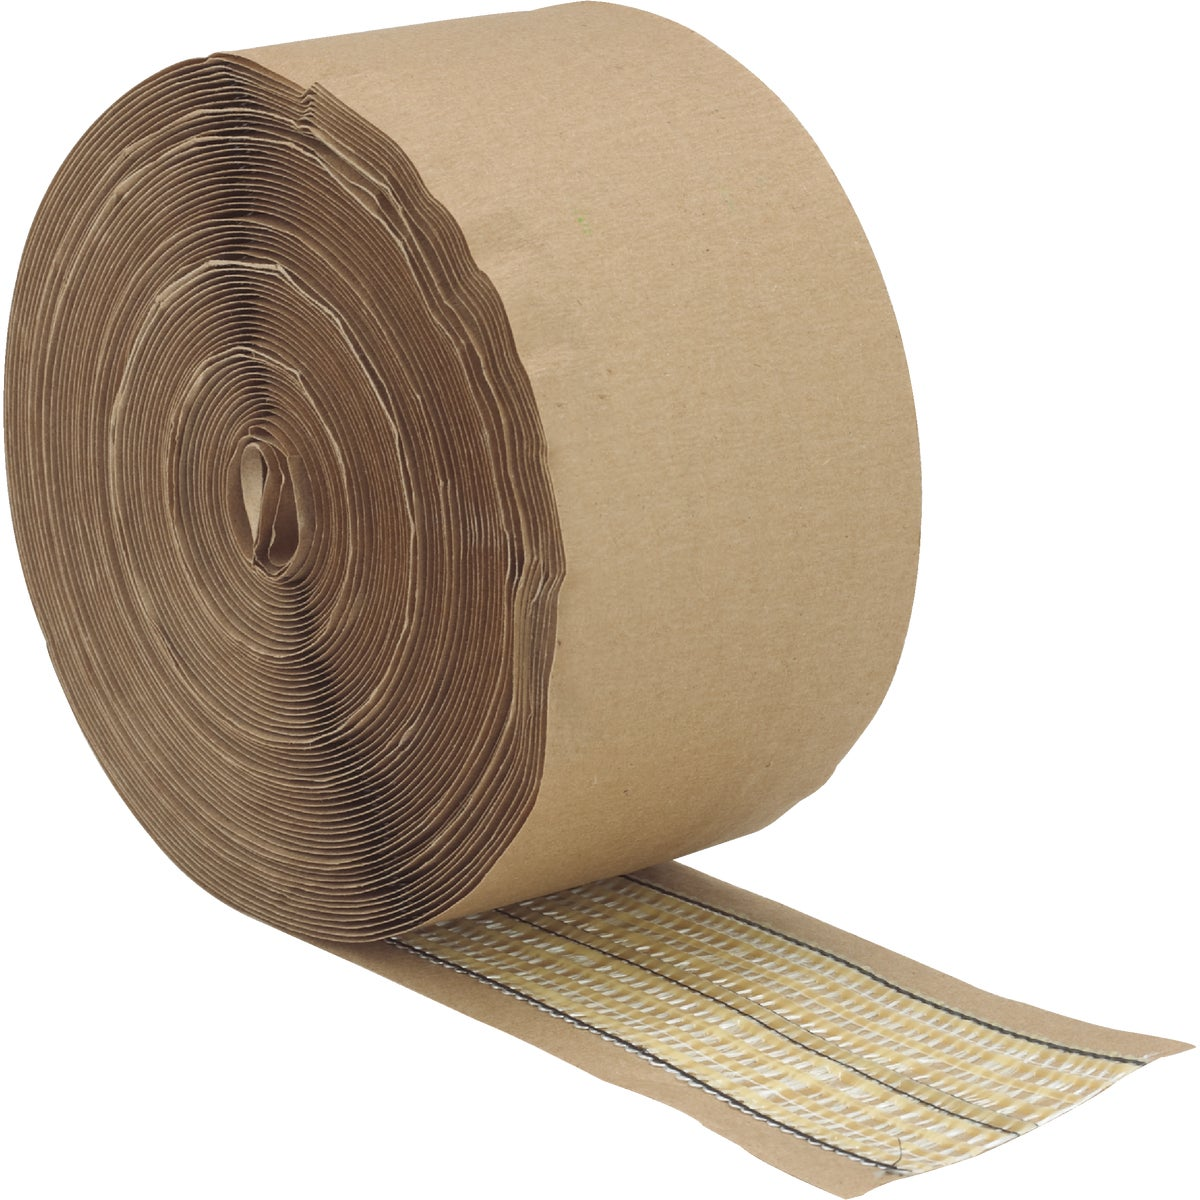 HEAT BOND SEAMING TAPE